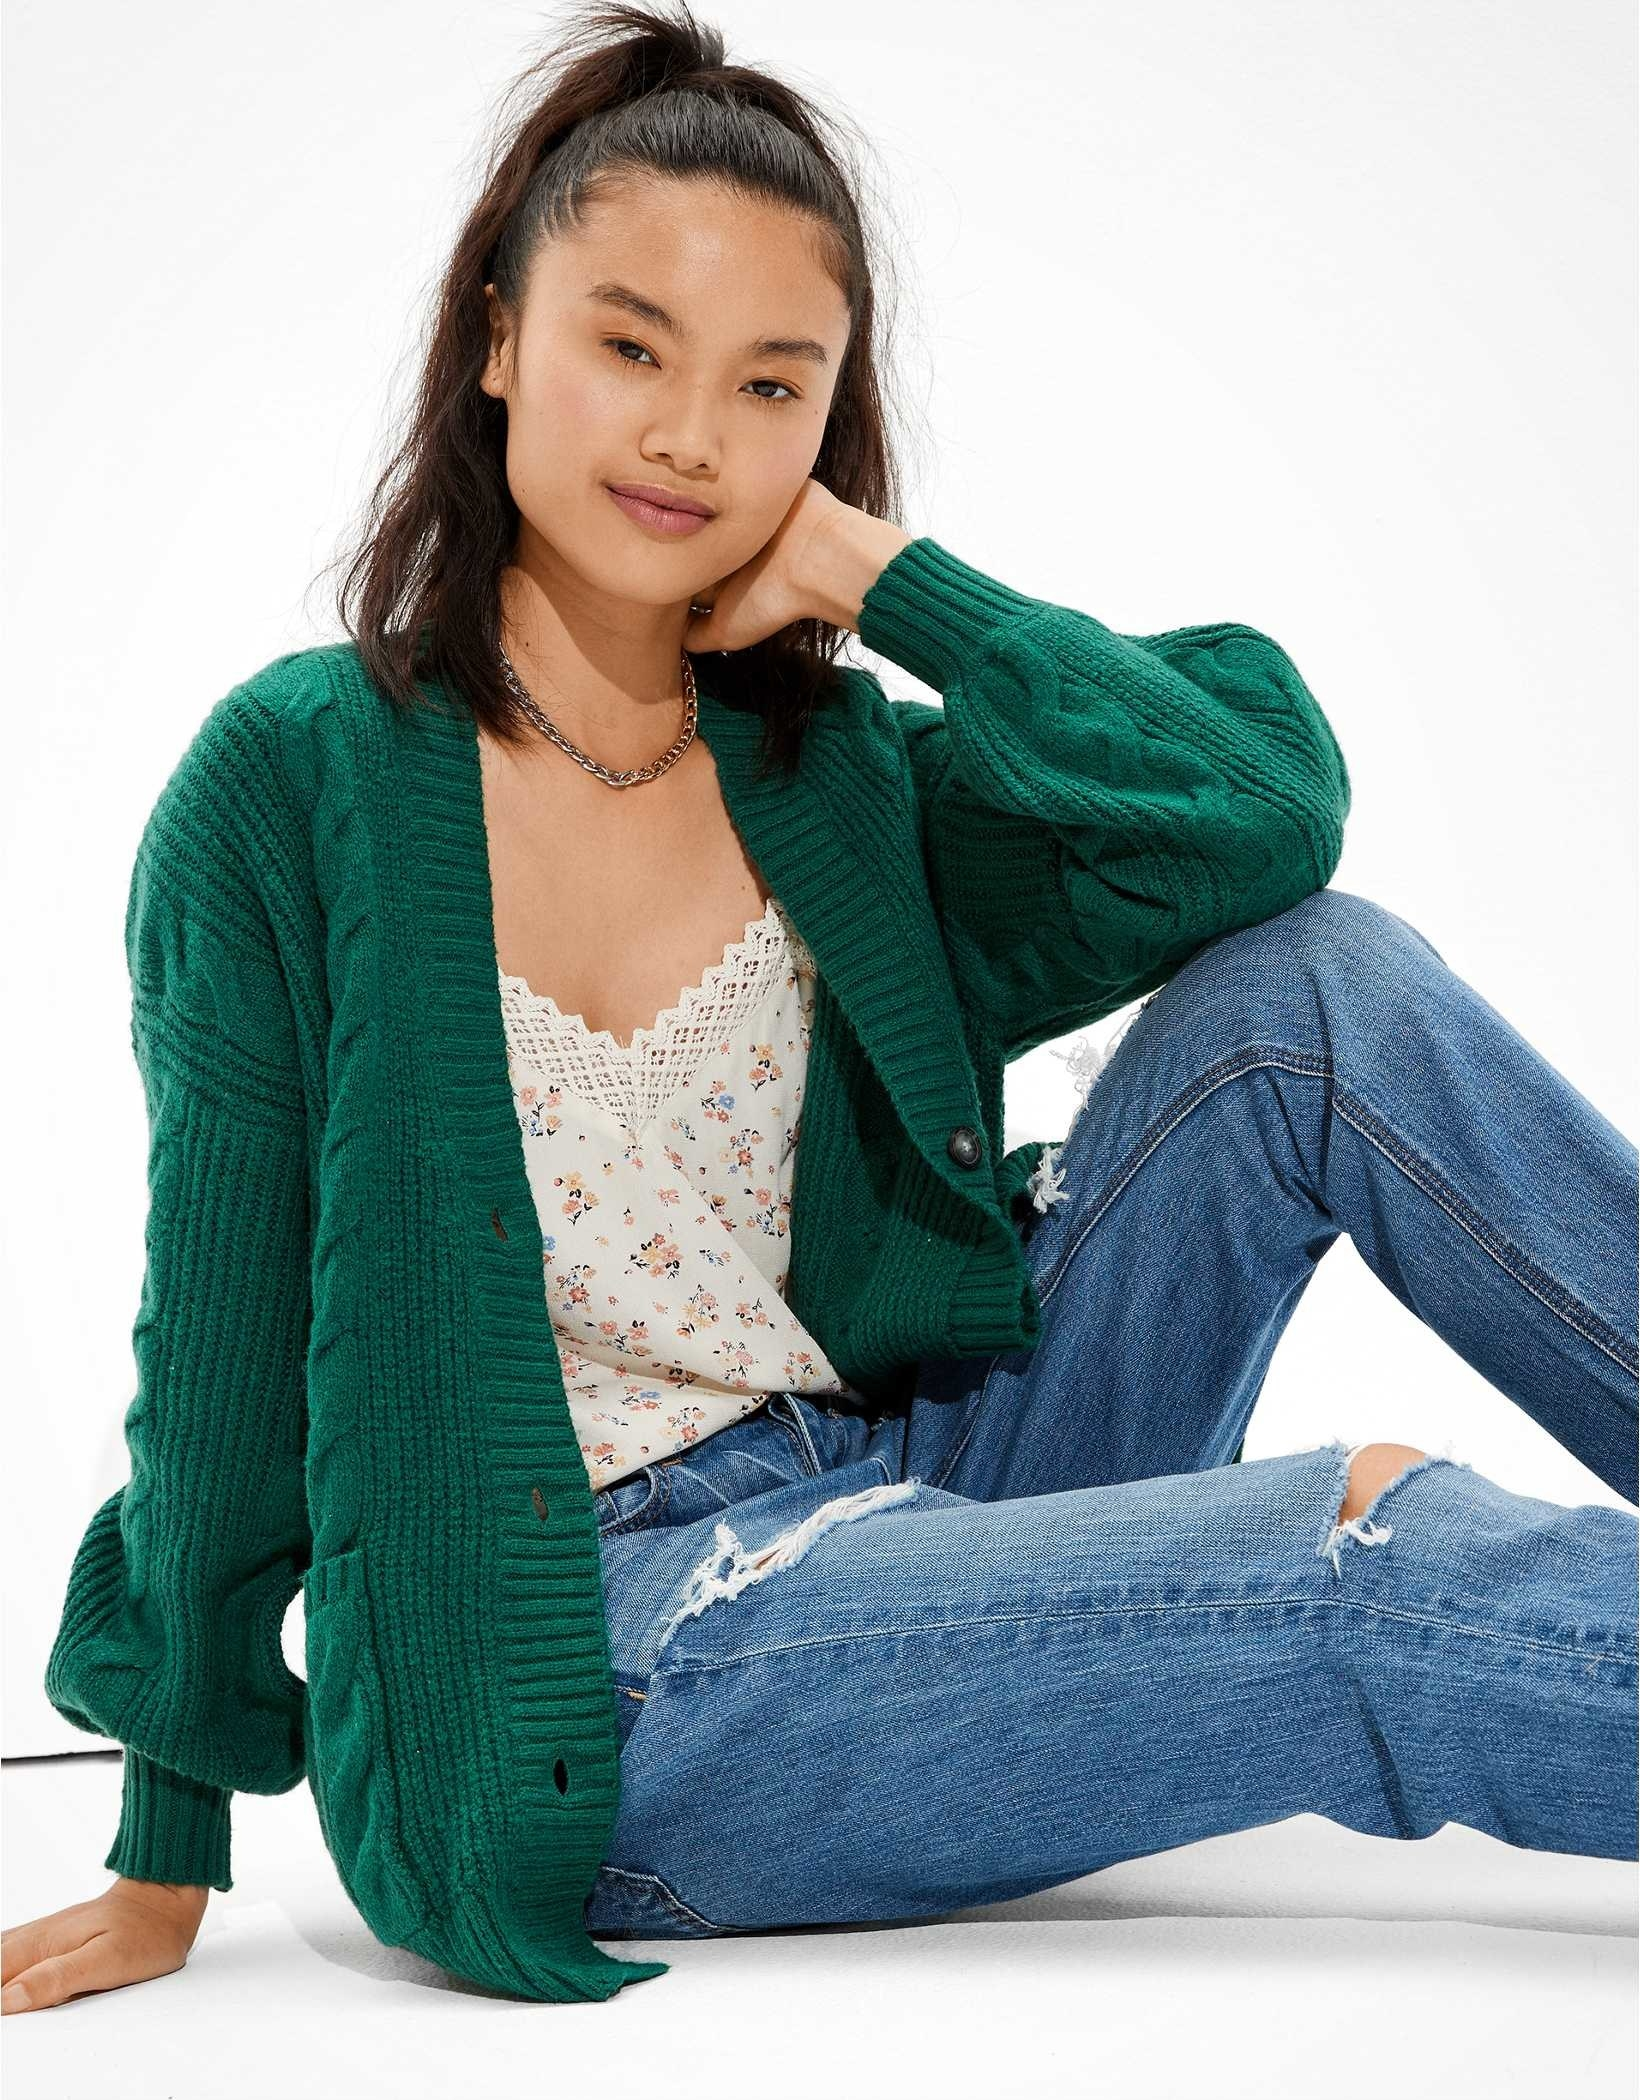 a model in an oversized green cardigan